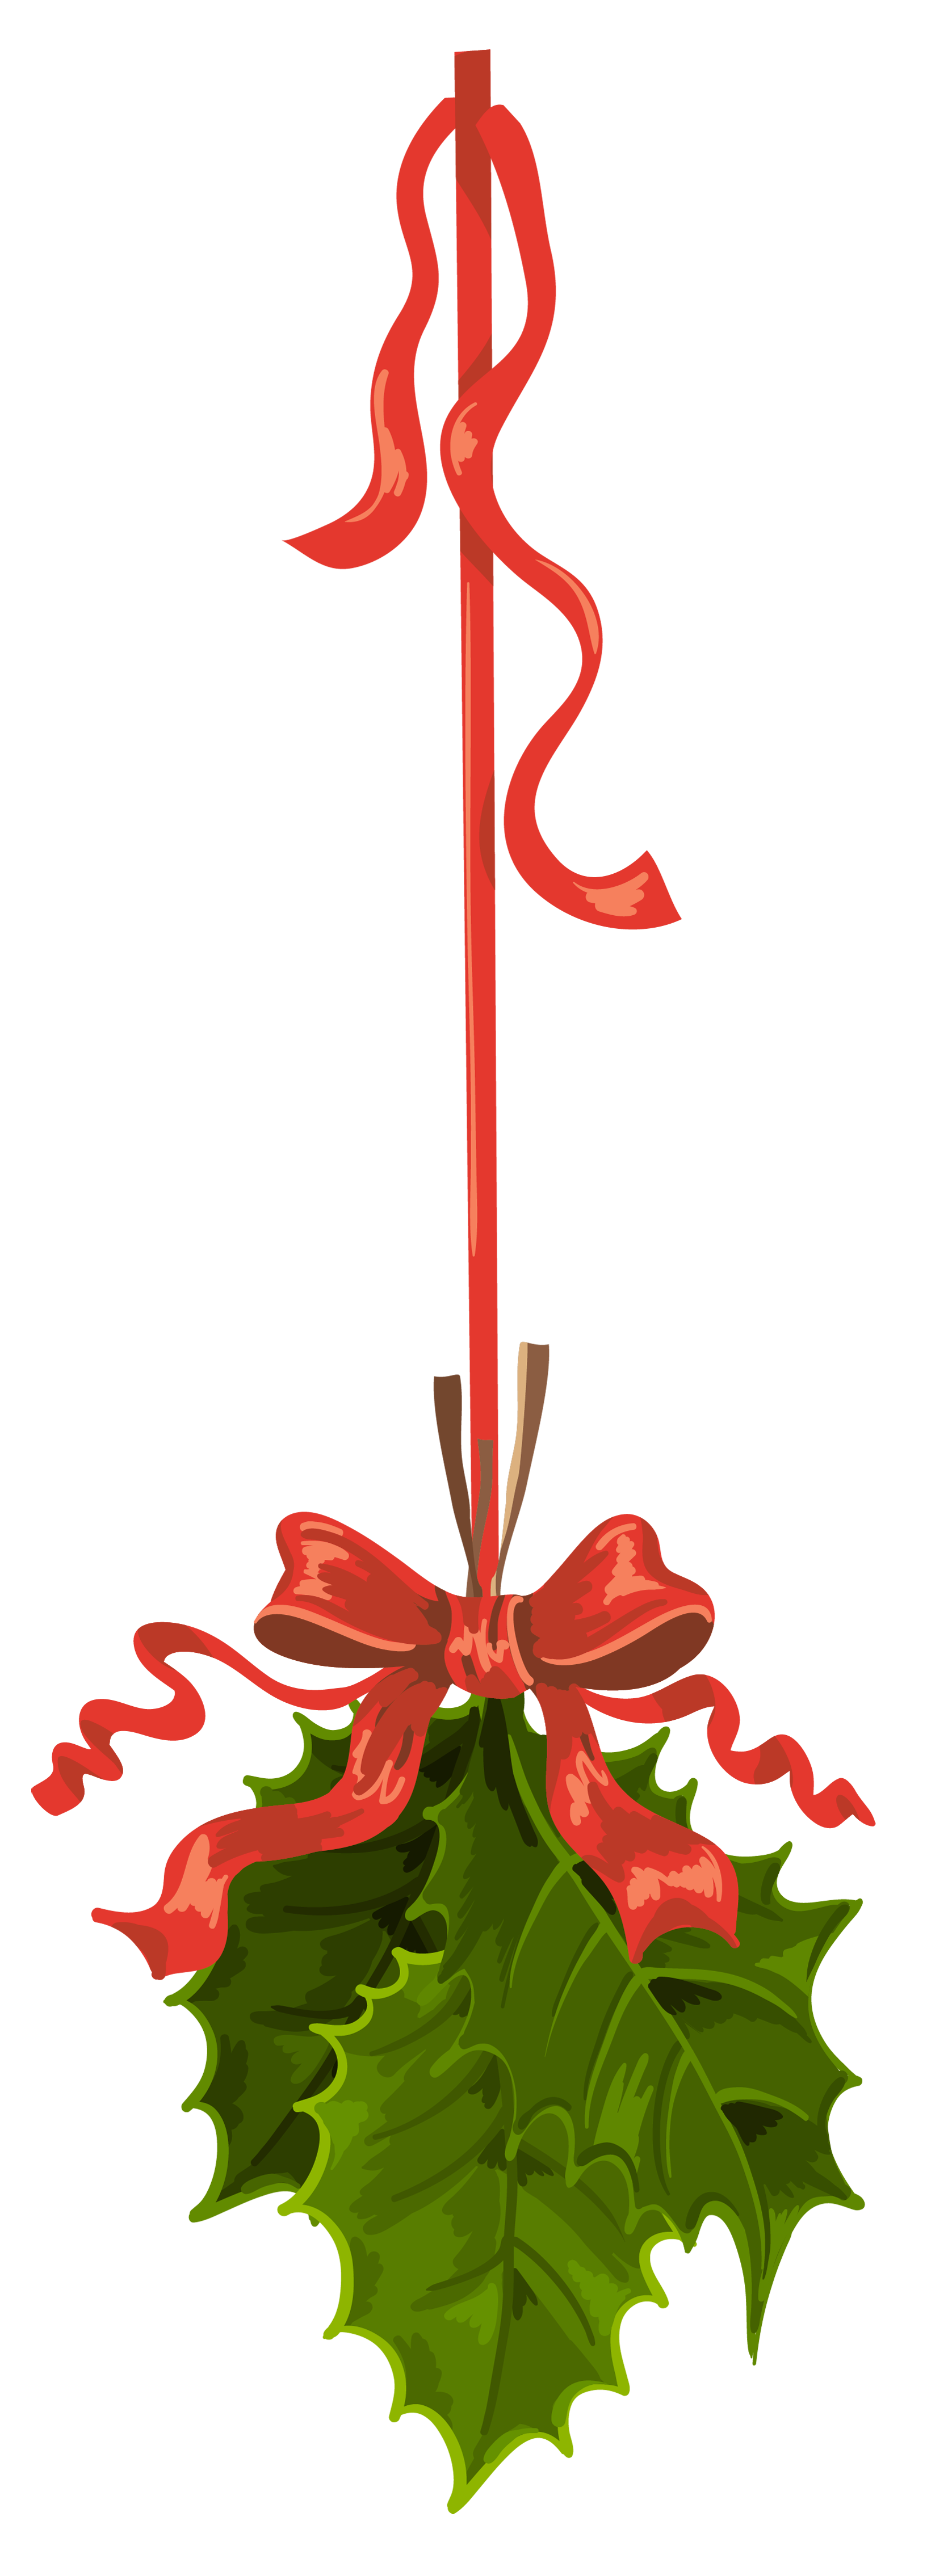 Christmas mistletoe clipart svg free library Transparent Christmas Hanging Mistletoe PNG Clipart | Gallery ... svg free library